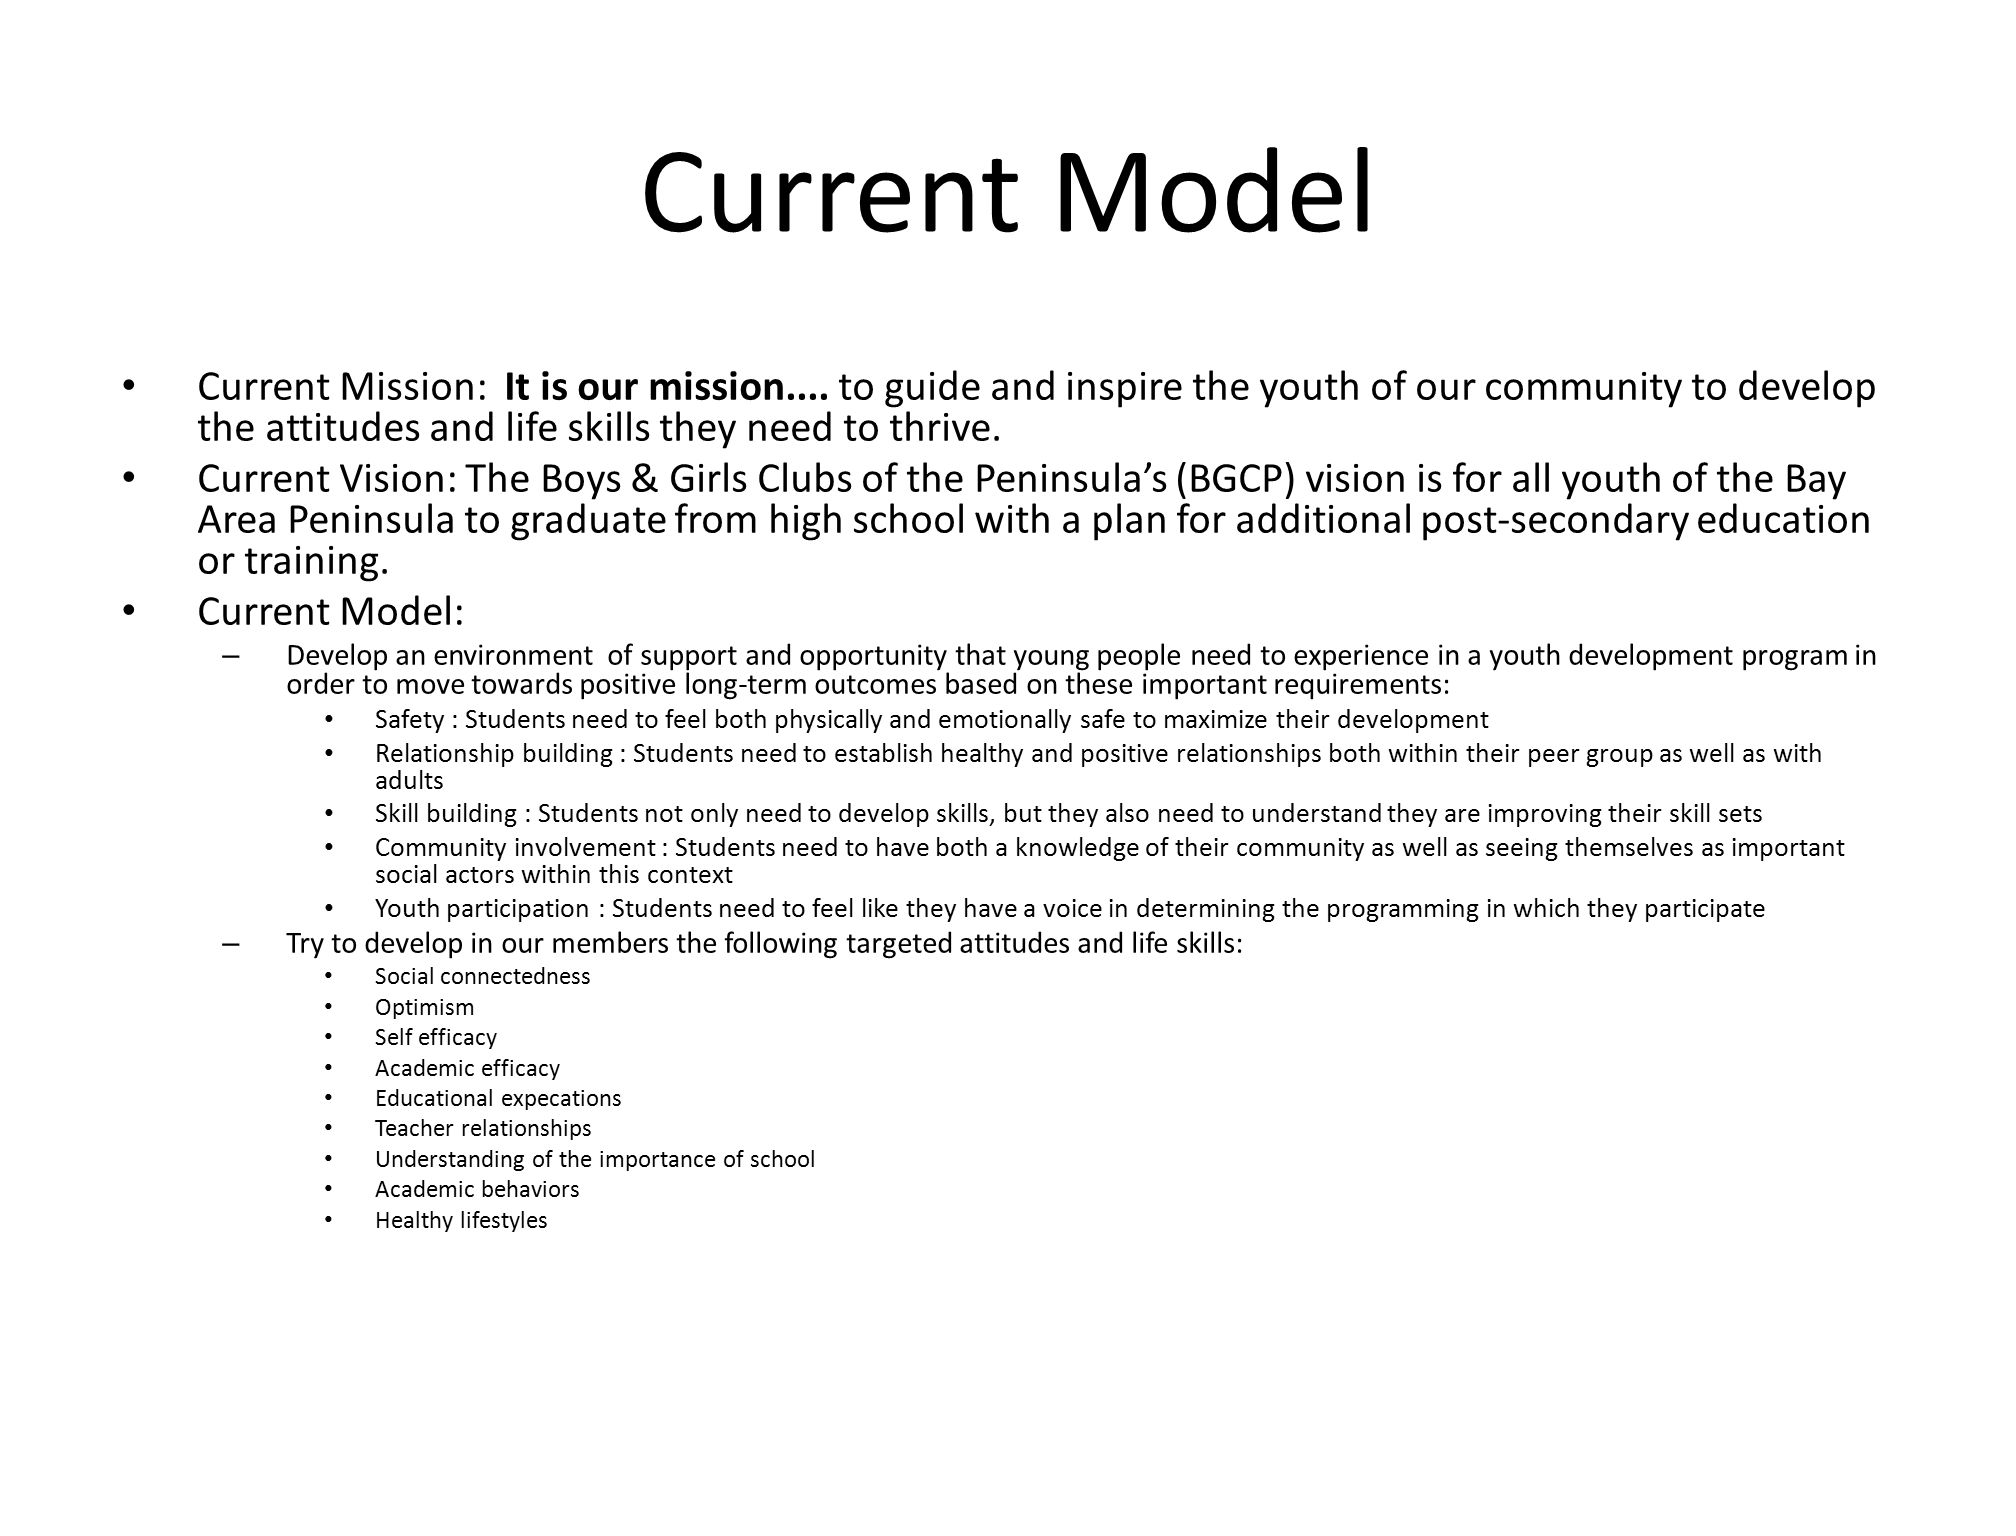 Current Model Current Mission: It is our mission.... to guide and inspire the youth of our community to develop the attitudes and life skills they nee